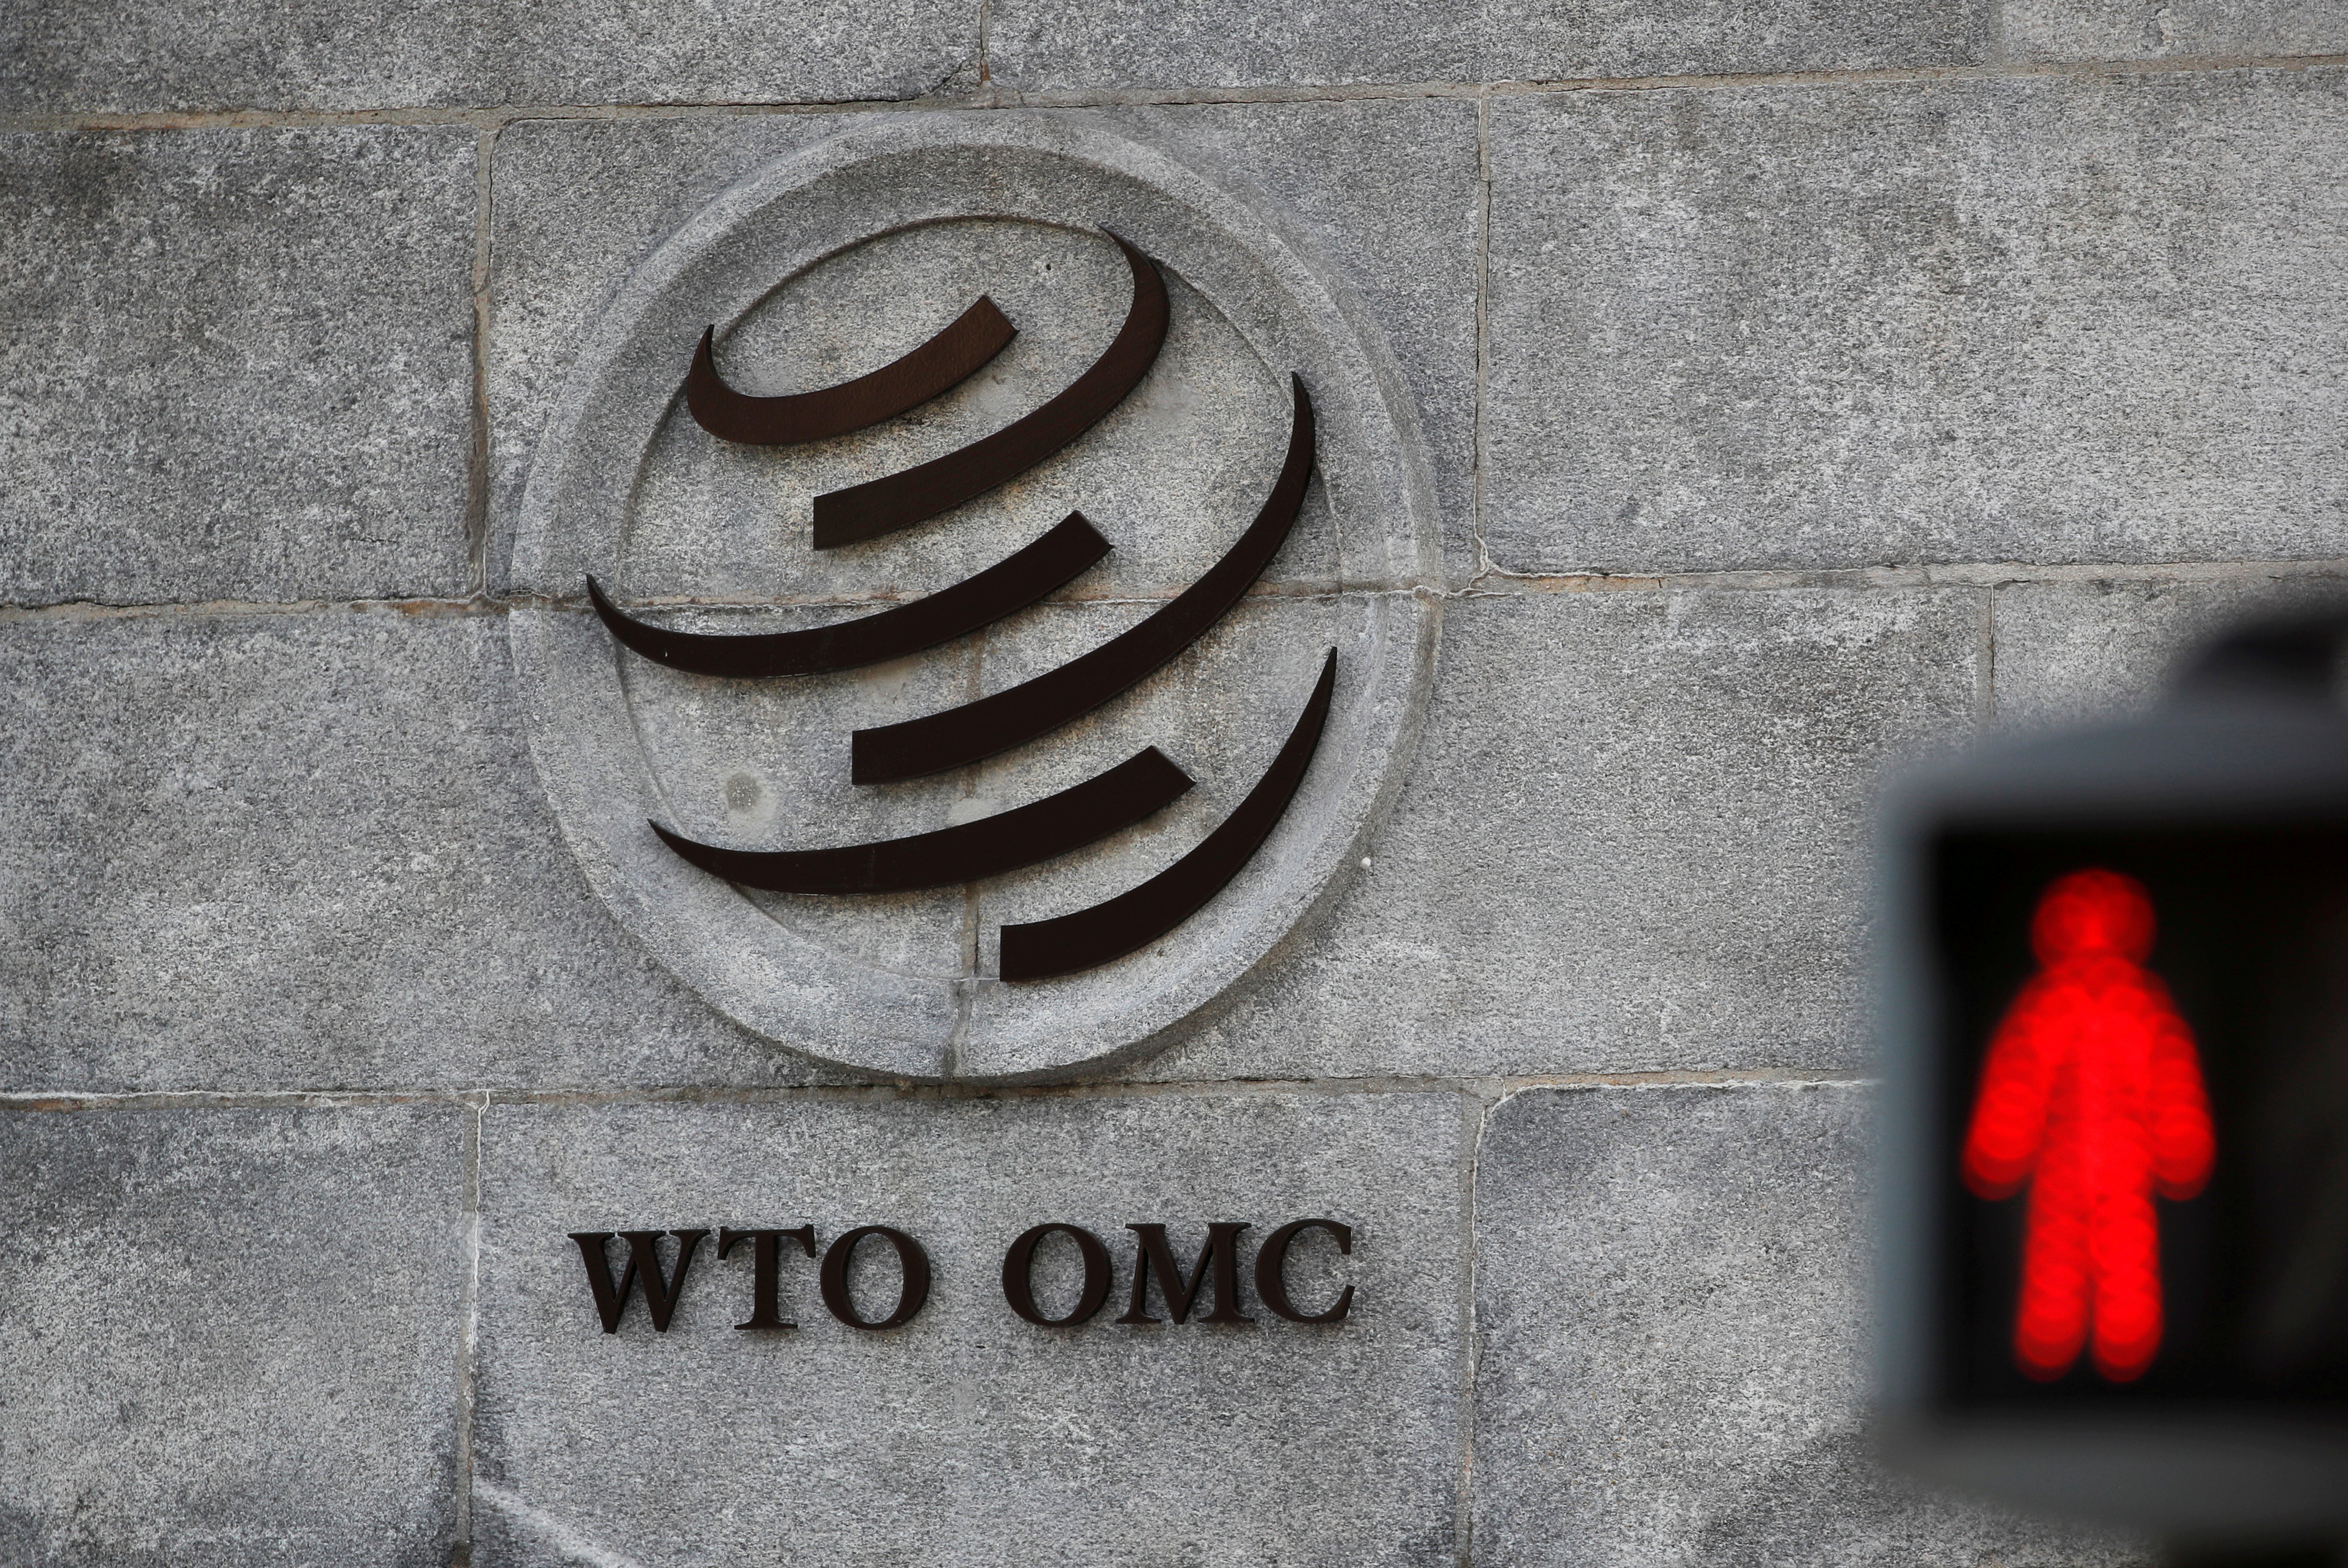 U.S. drafts WTO reform to halt handouts for big and rich states